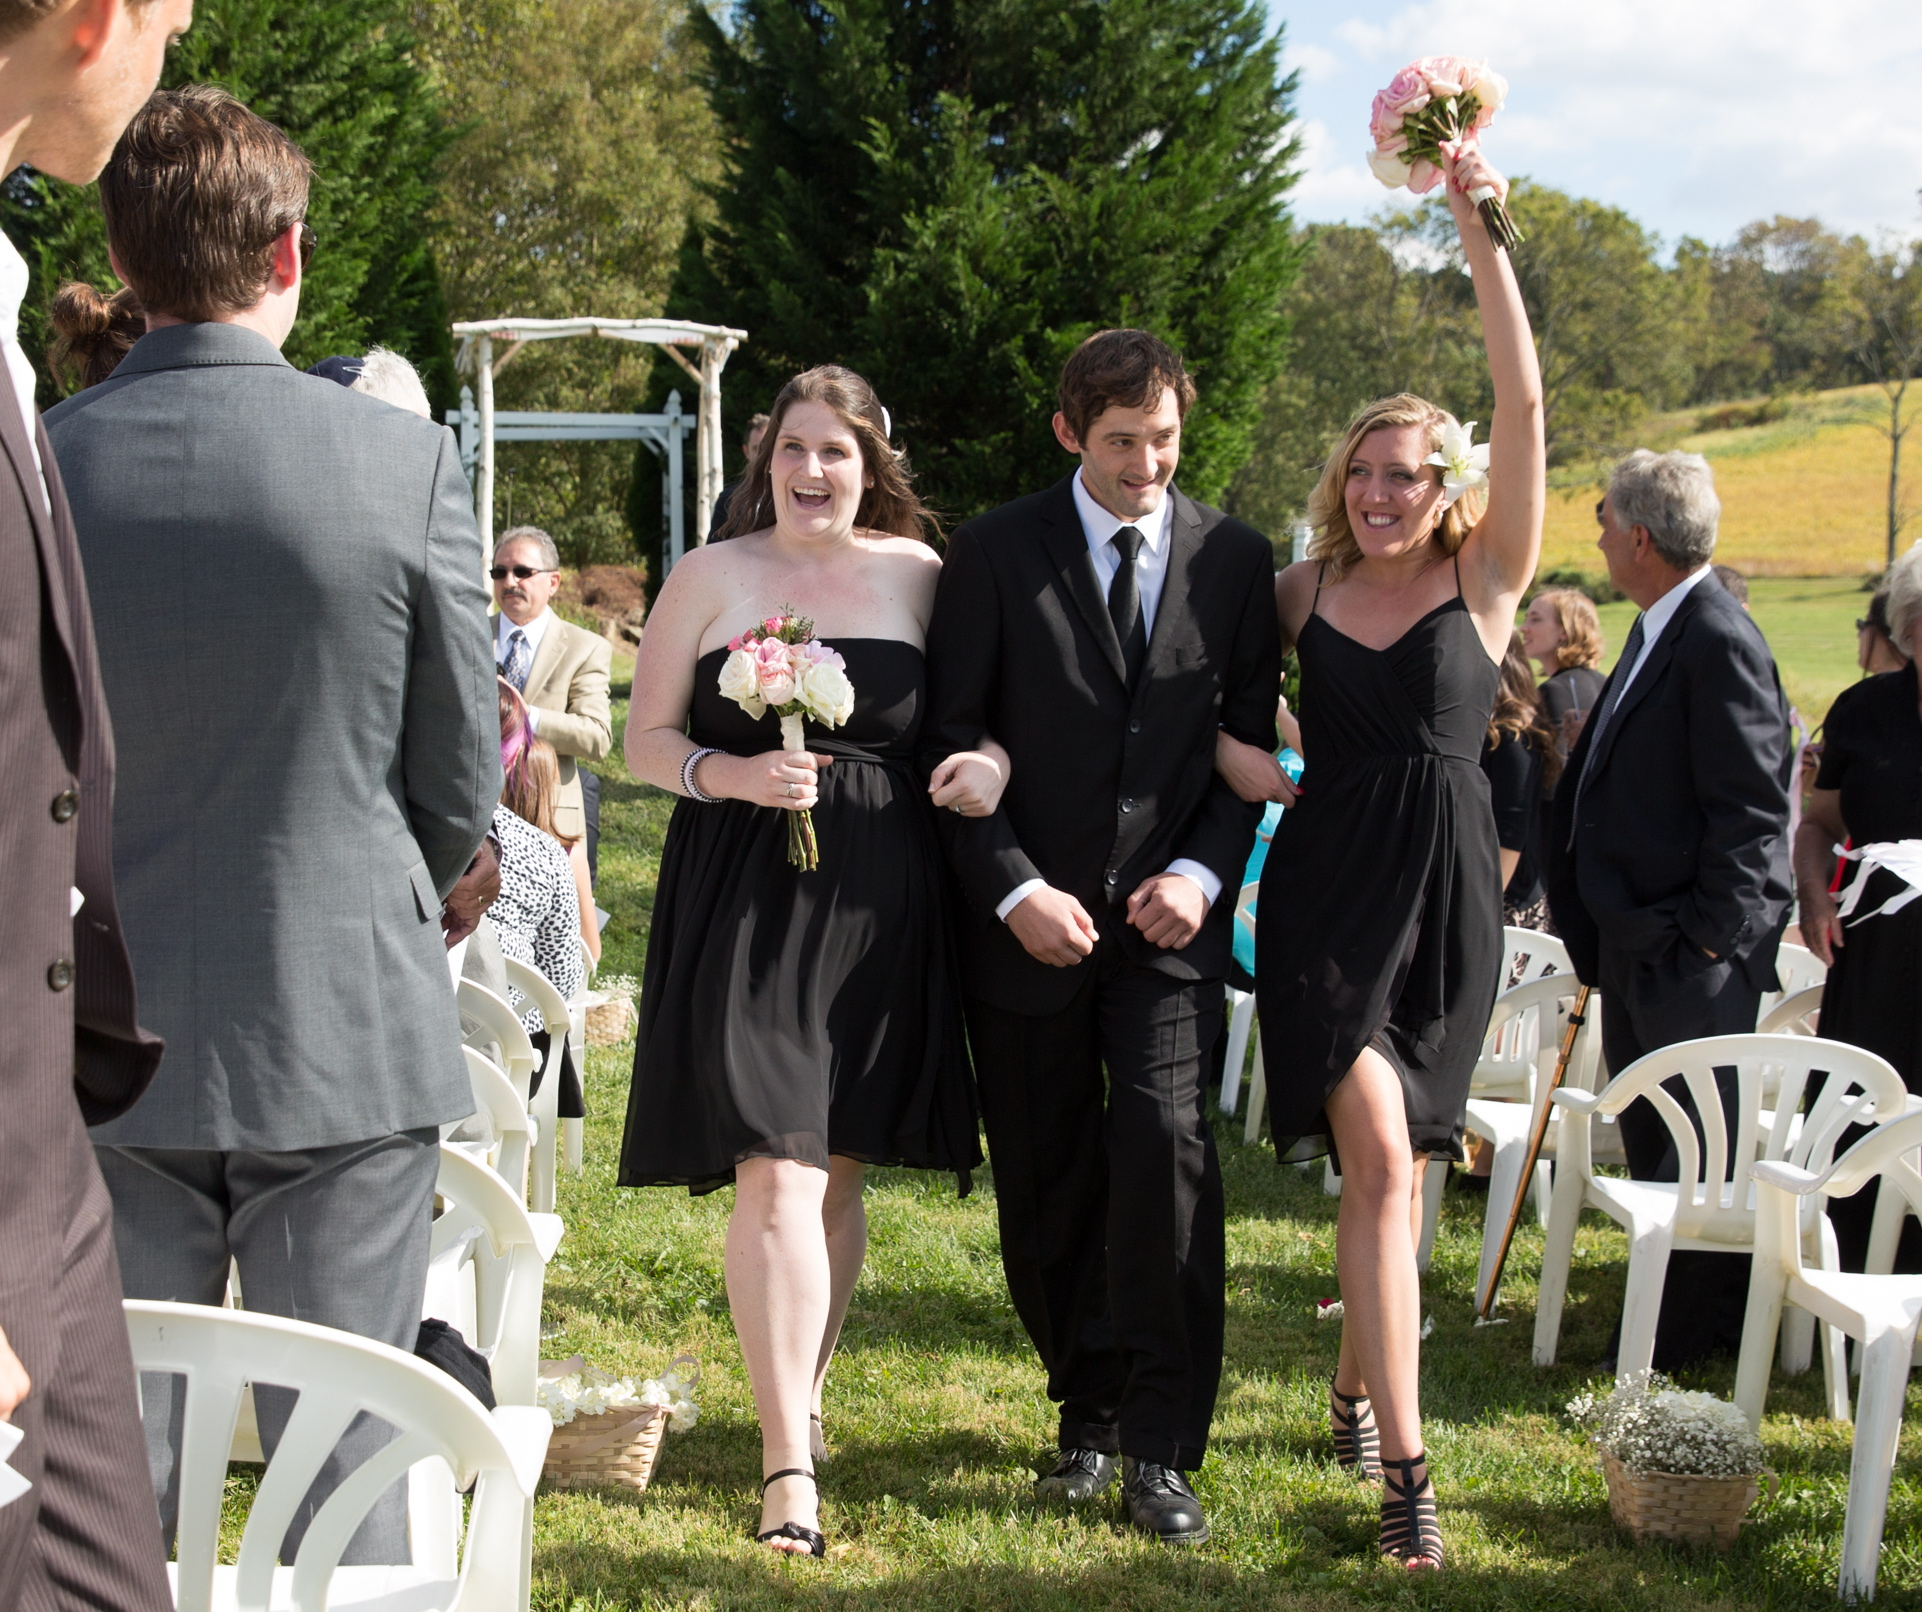 Wedding party recessional